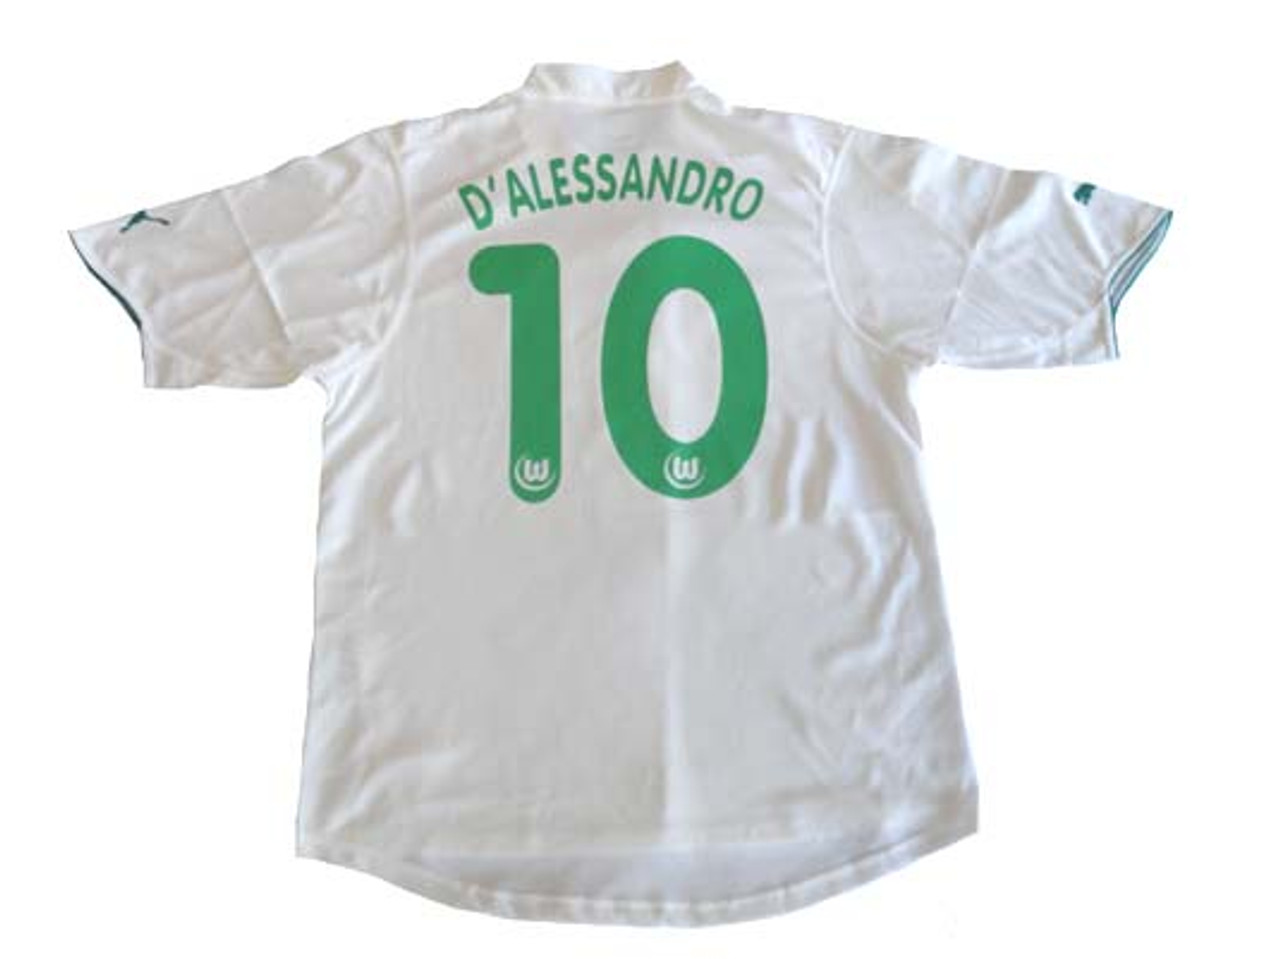 competitive price 9adfb 0fcfe PUMA WOLFSBURG 2004 HOME`D'ALESSANDRO` JERSEY